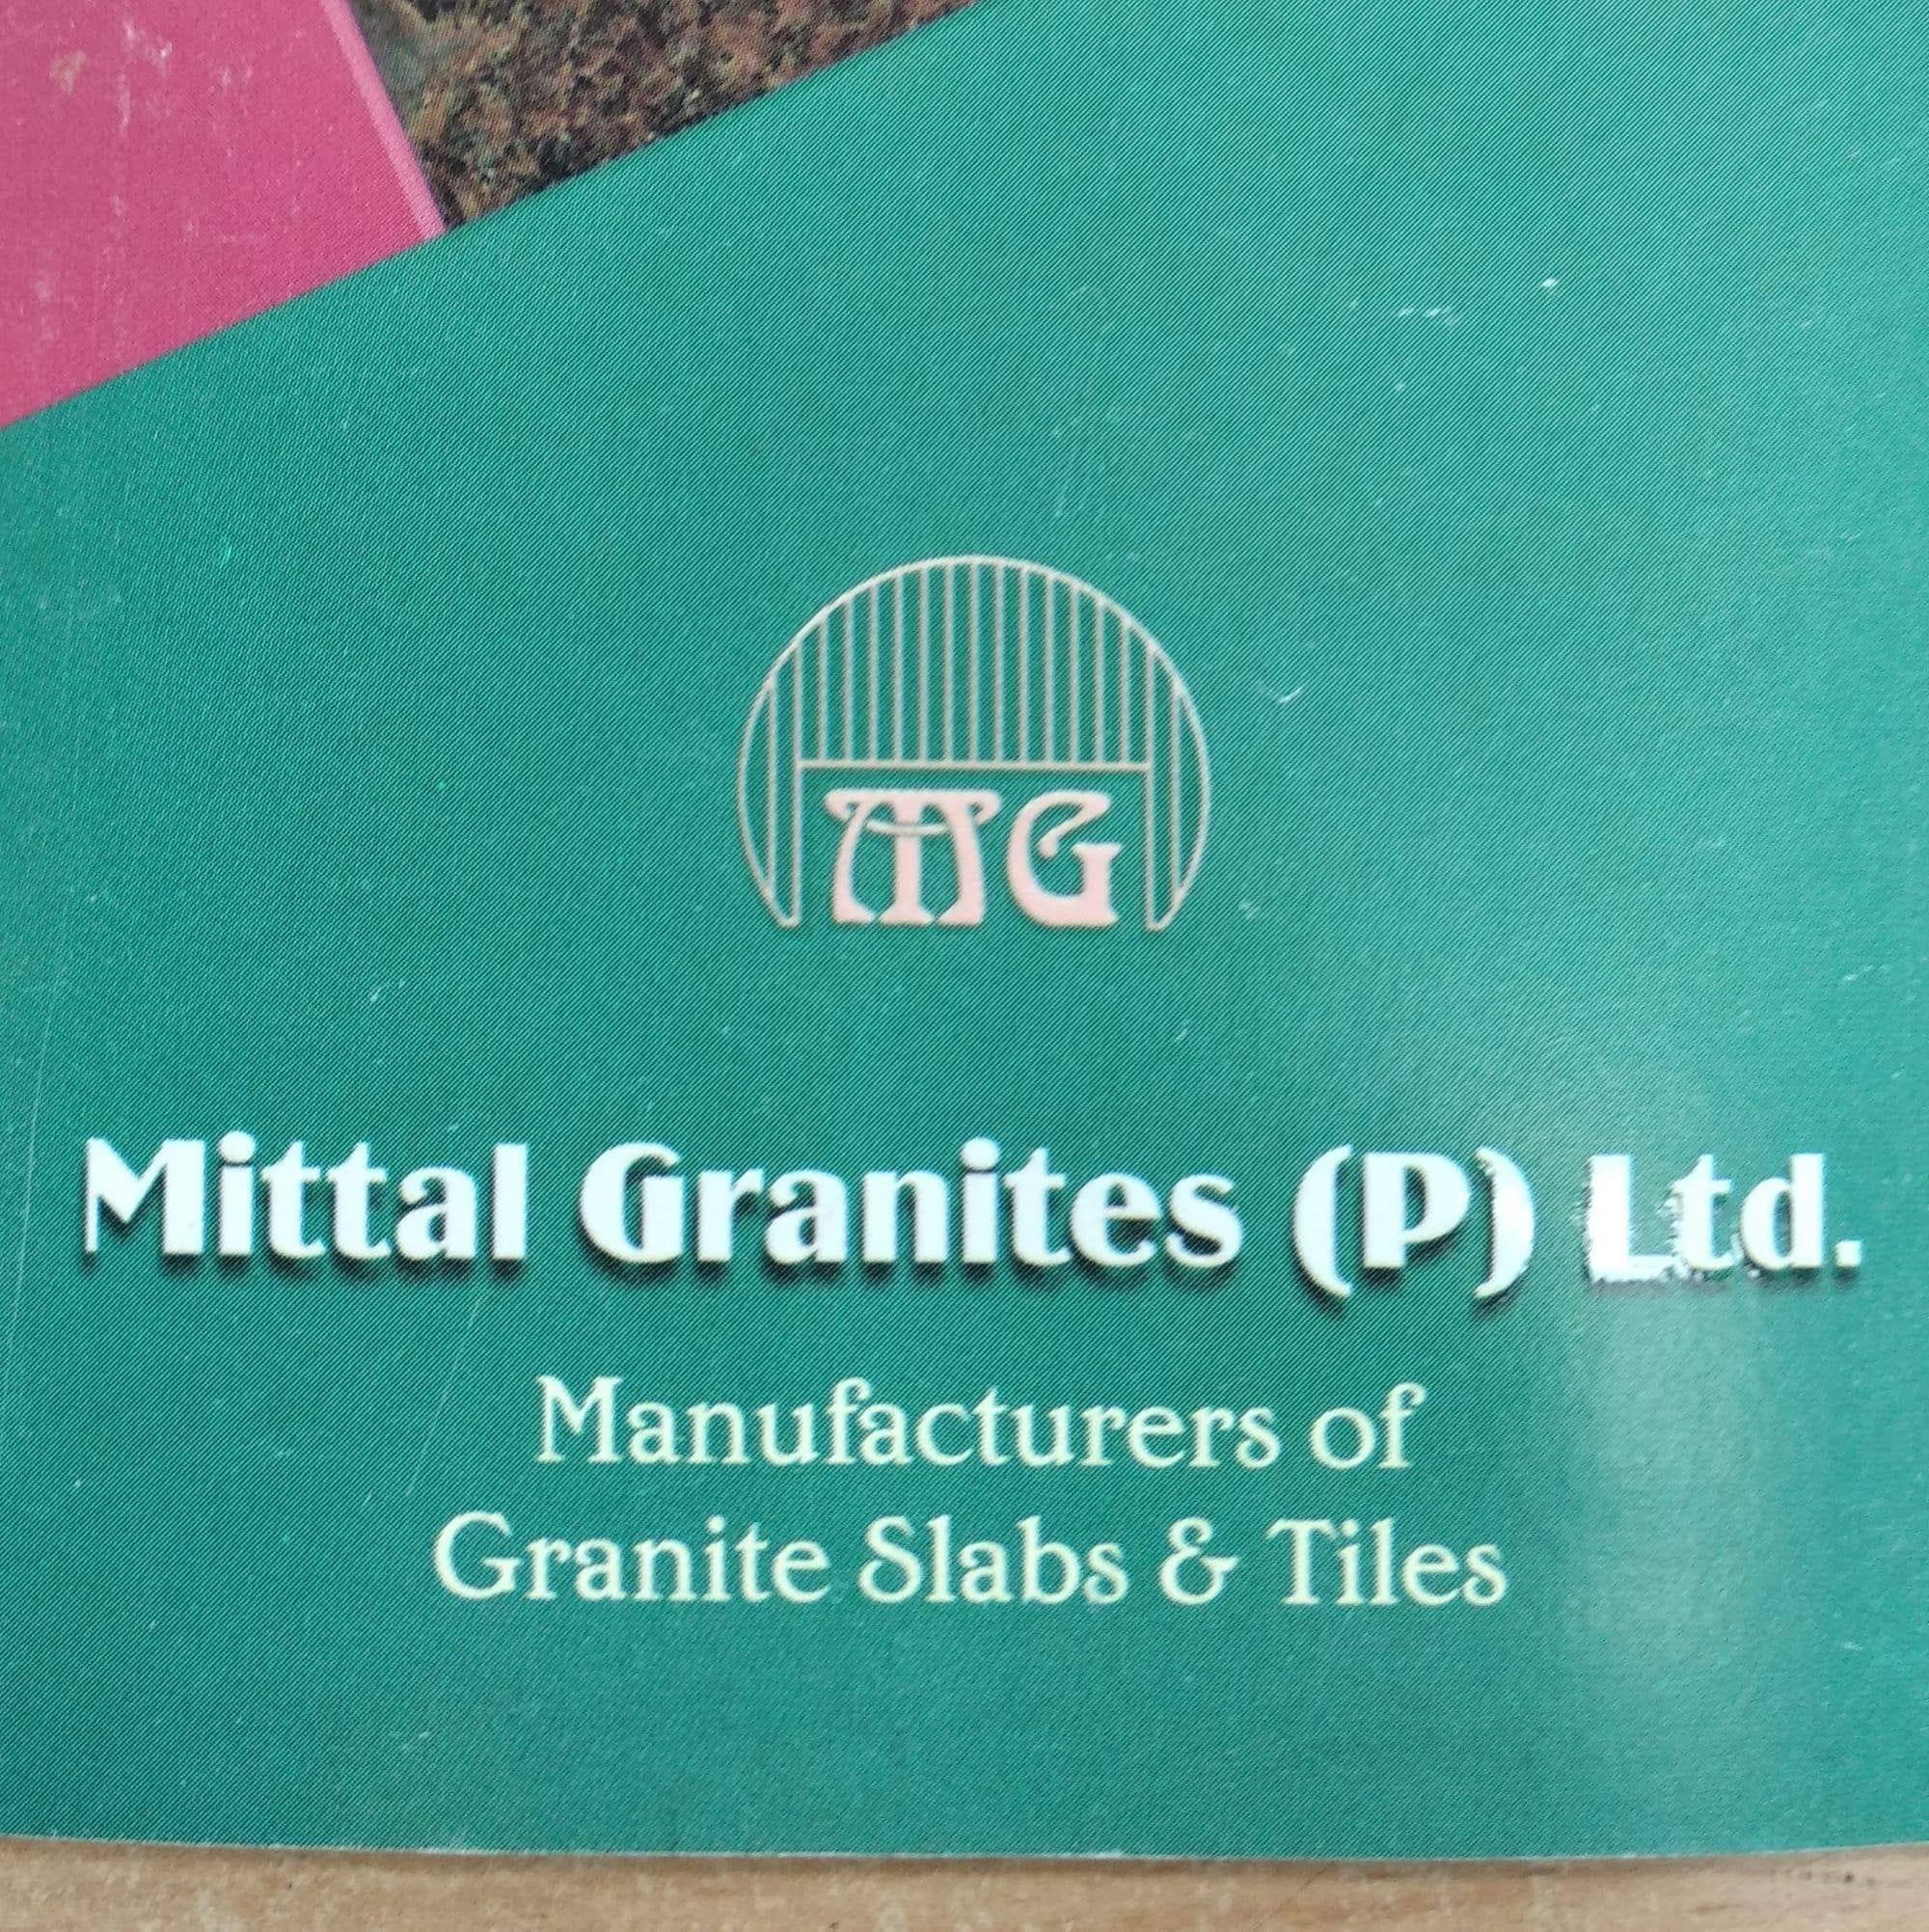 Mittal Granites Private Limited